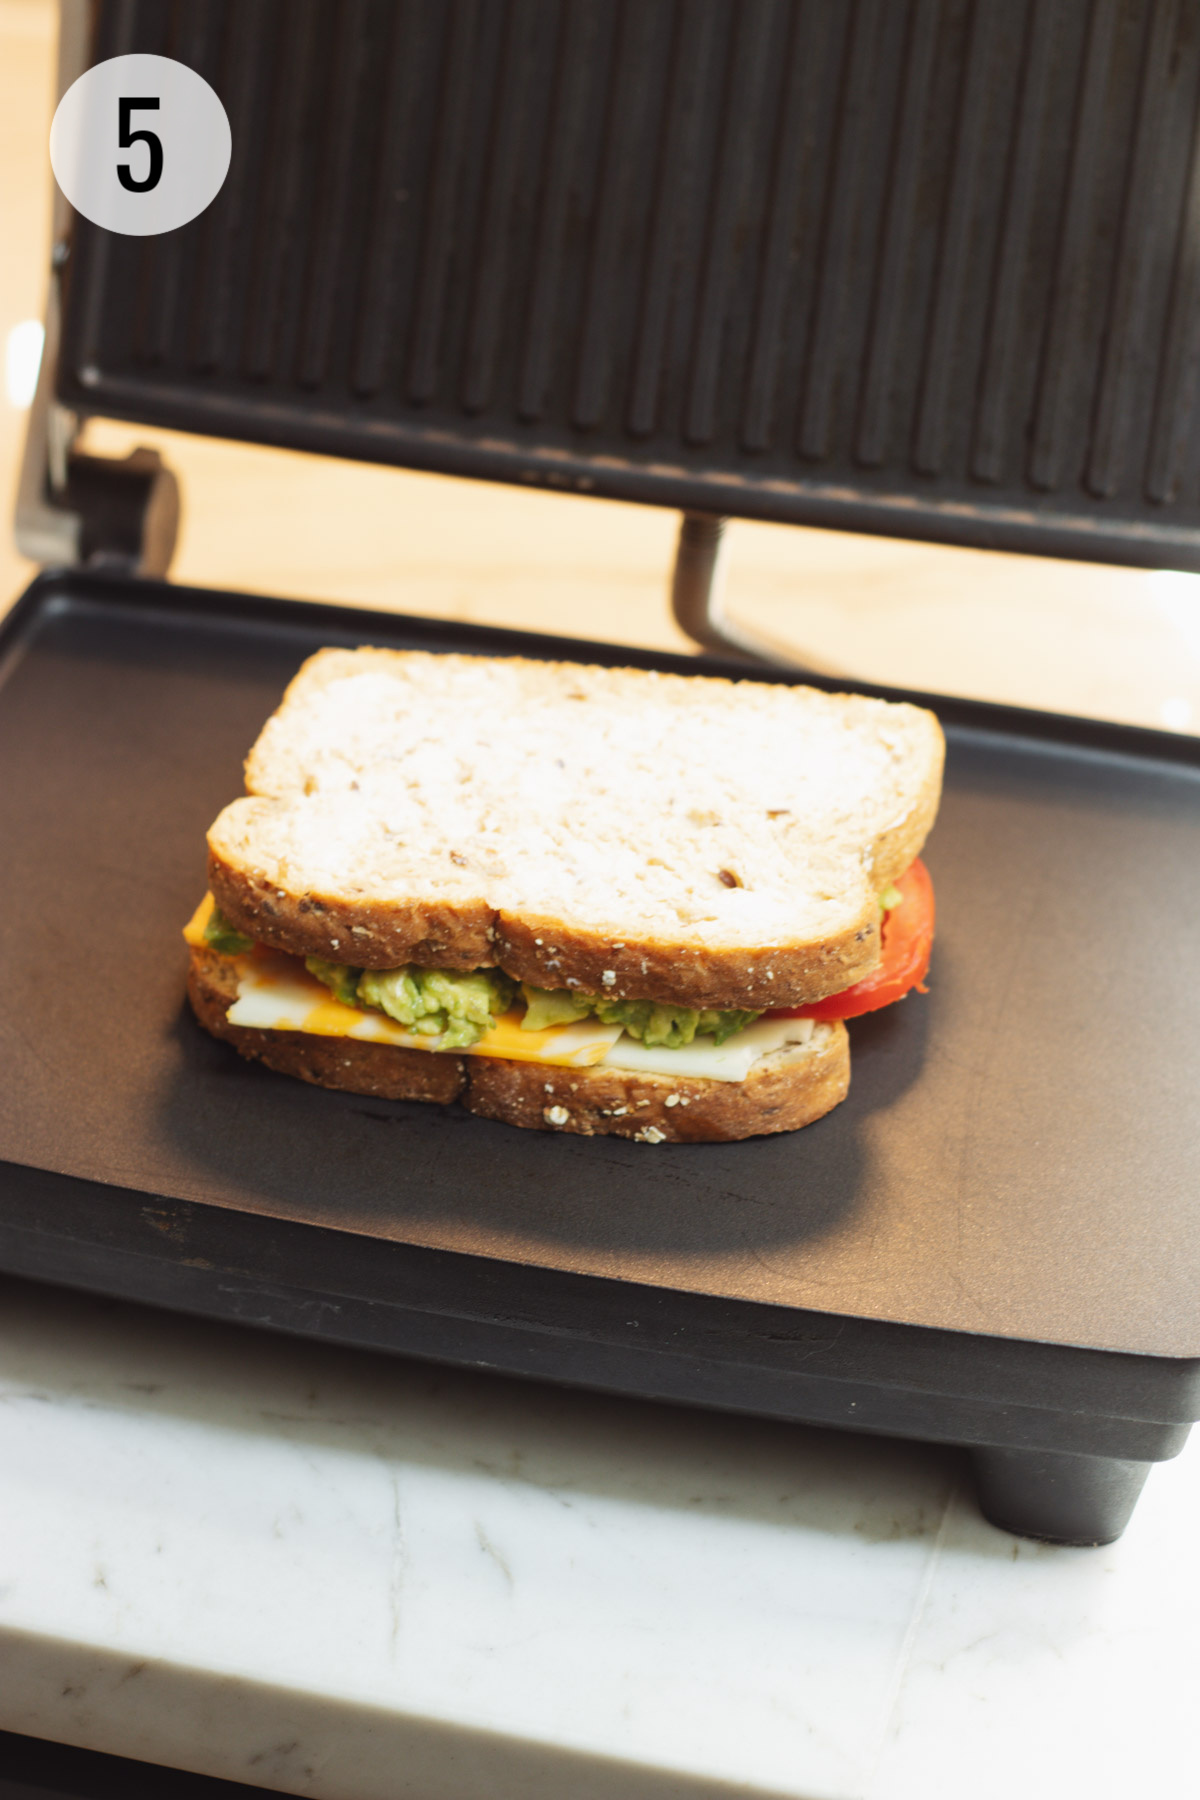 Assembled tomato and avocado grilled cheese sandwich ready to be grilled on panini maker.